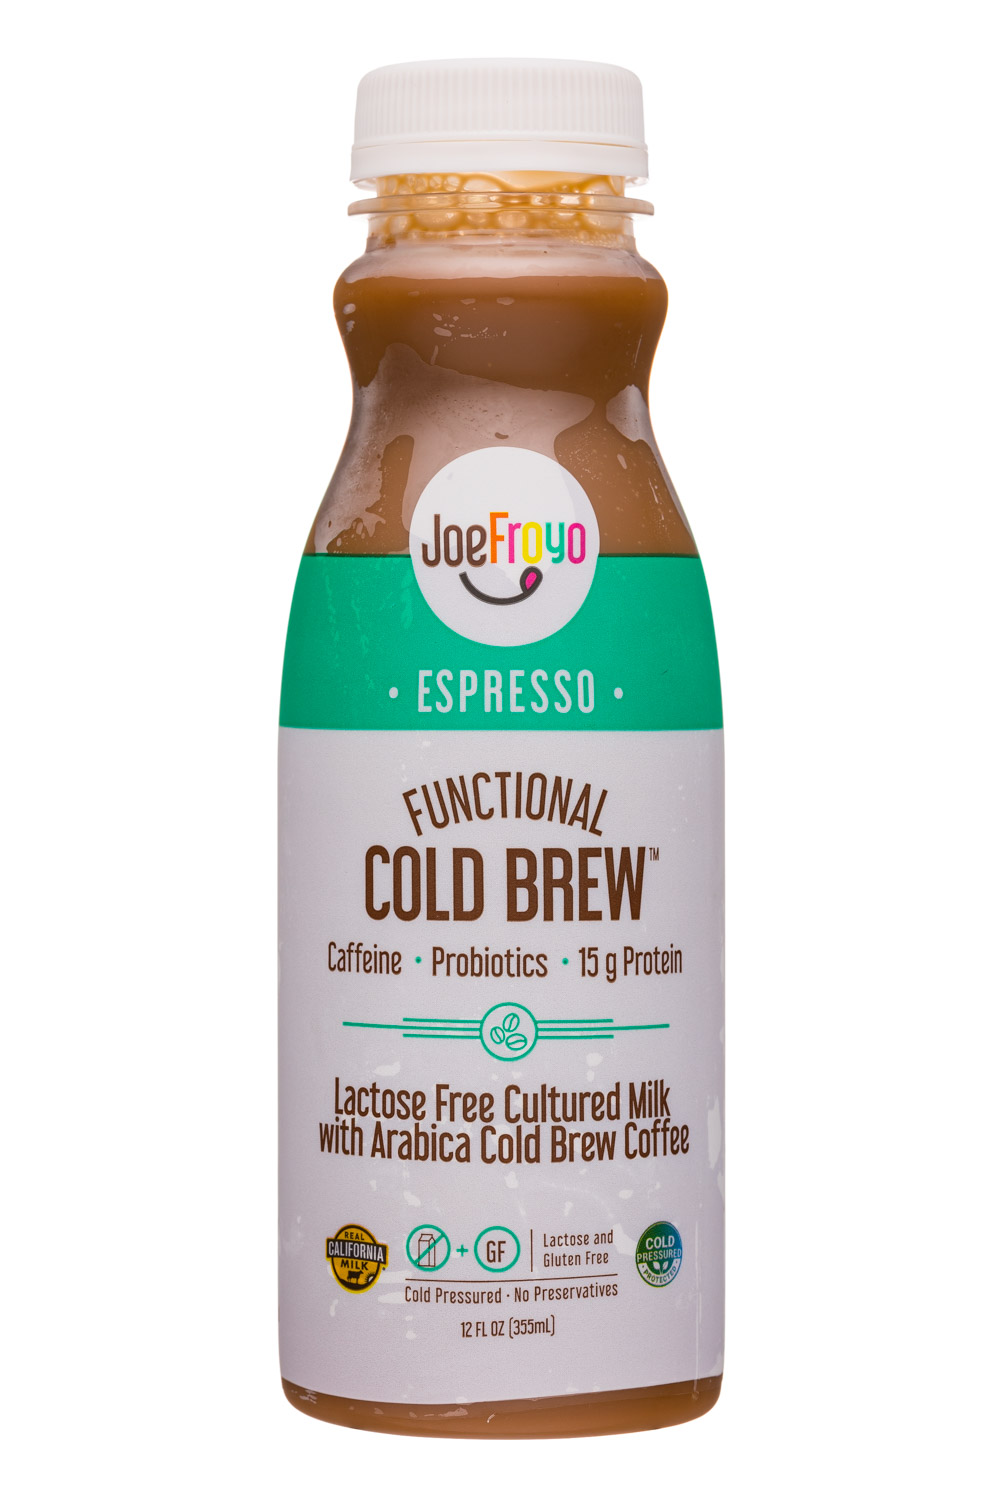 Functional Cold Brew - Espresso